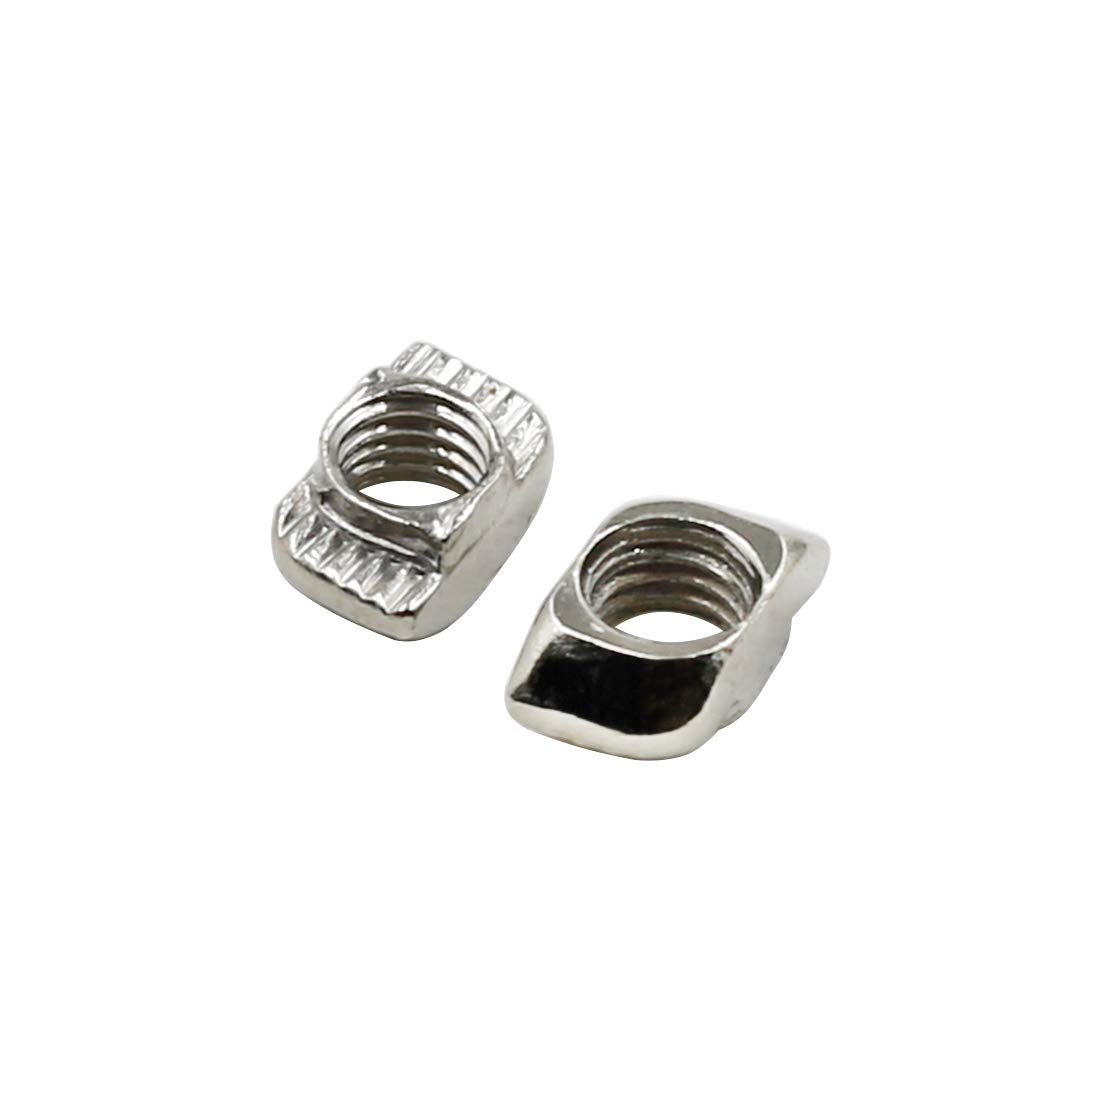 Yoohey 10PCS T Nuts 2020 Series M5 Sliding T Slot Nuts Nickel-Plated Carbon Steel Half Round Roll in T-Nut